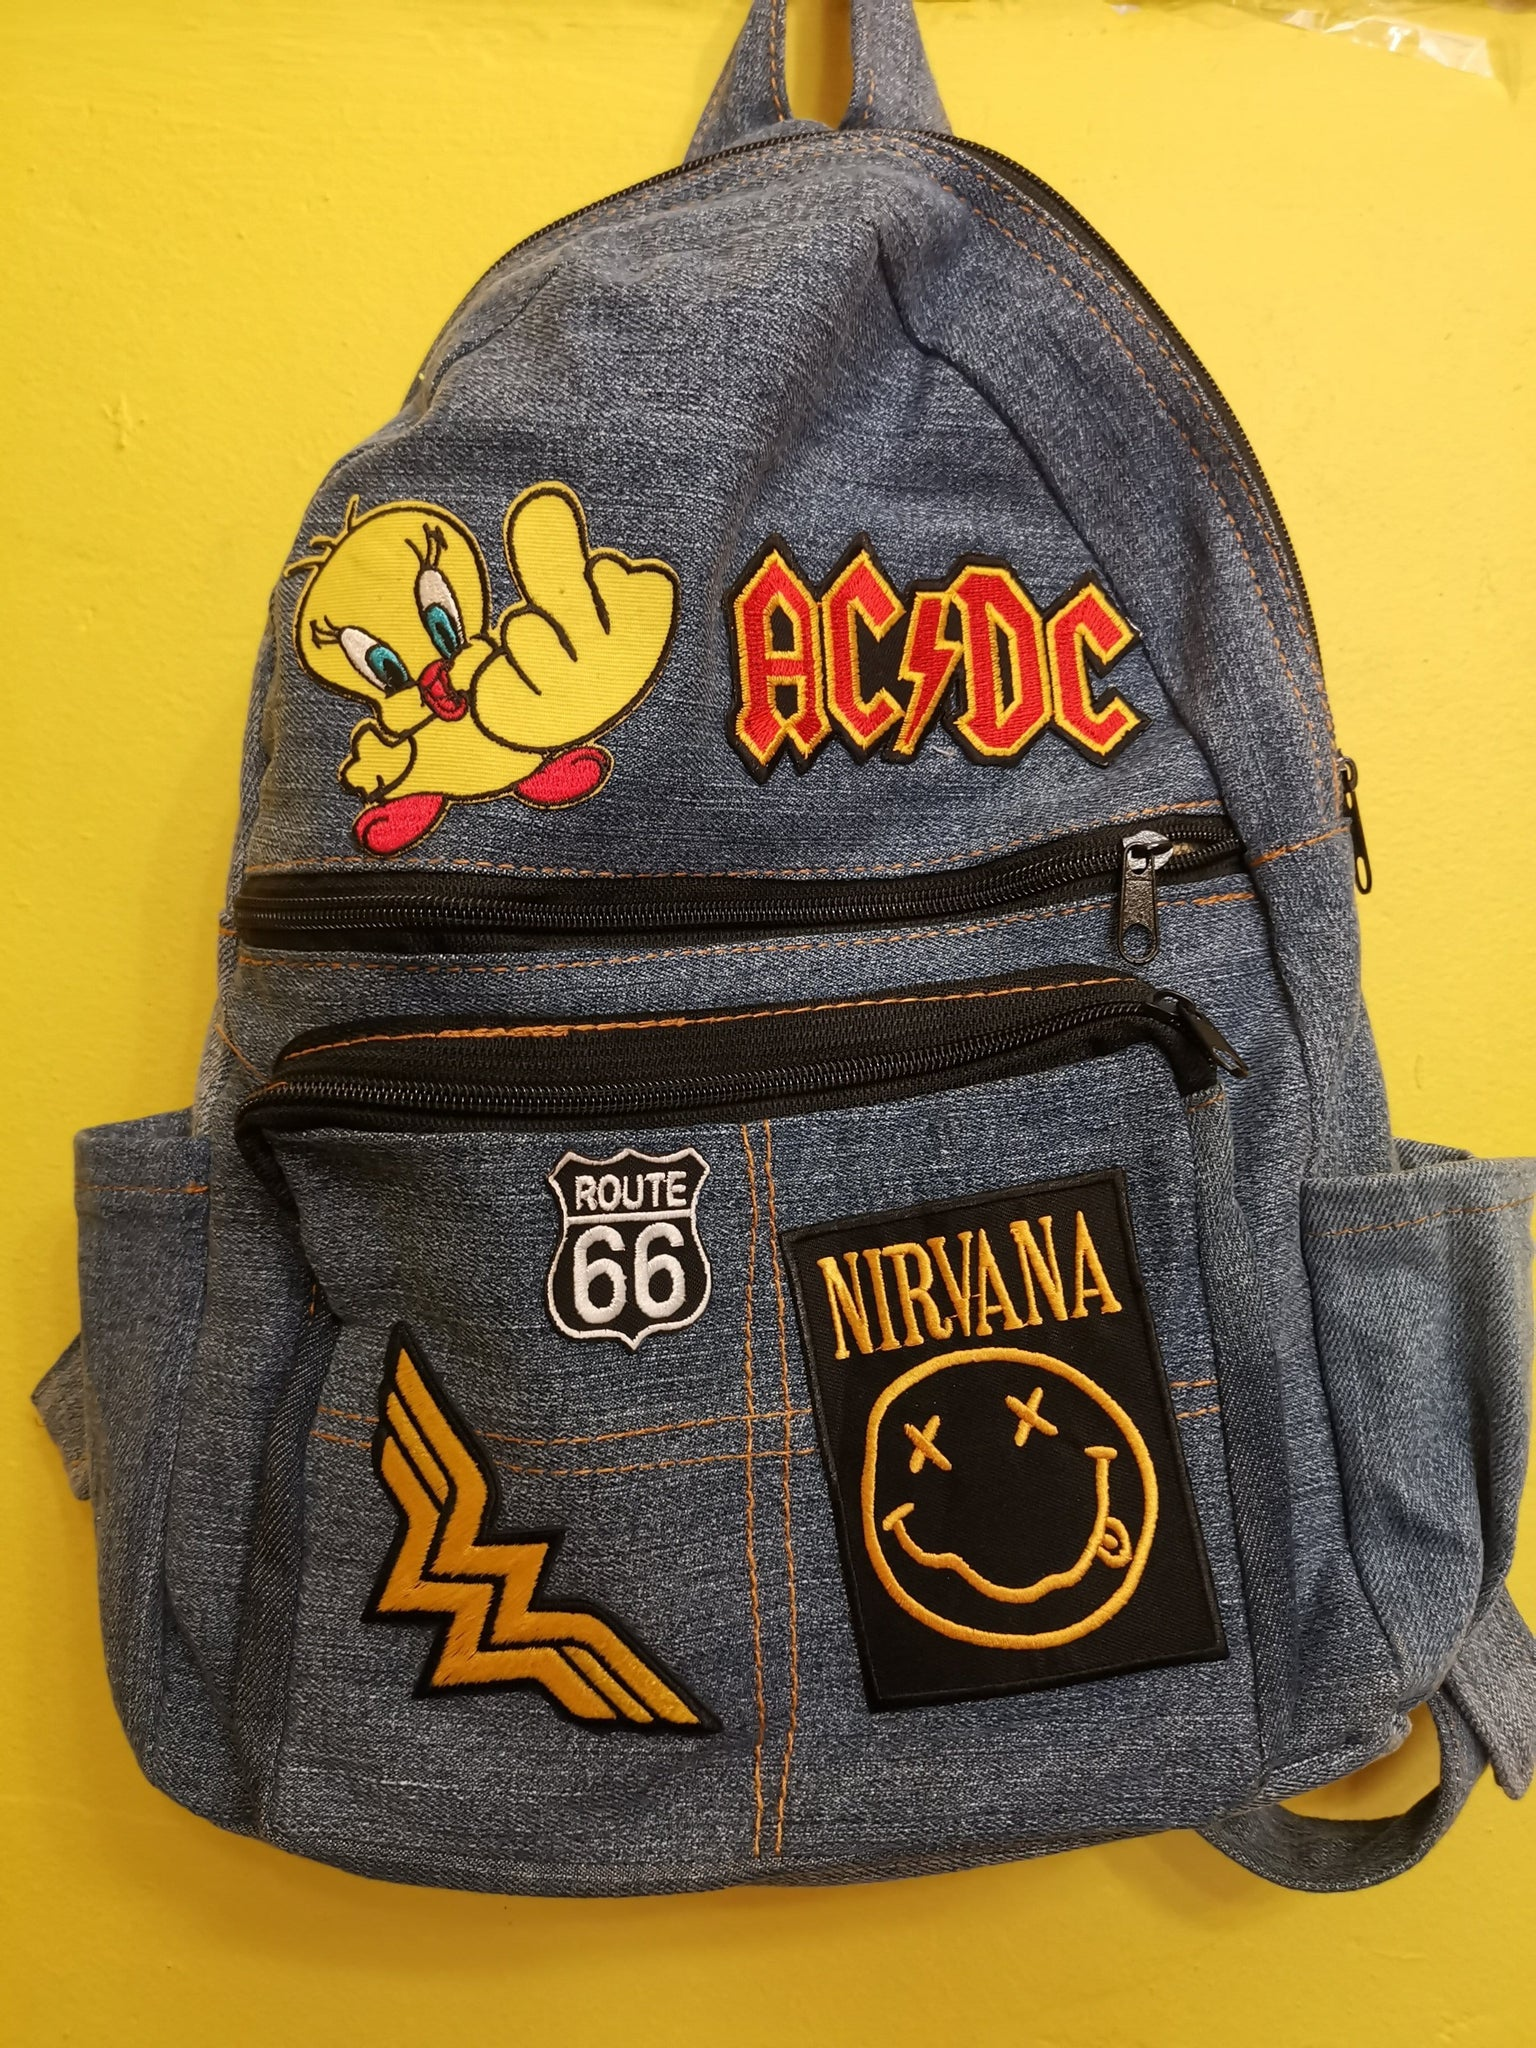 Recycled Denim backpack with patches 9 Iron on